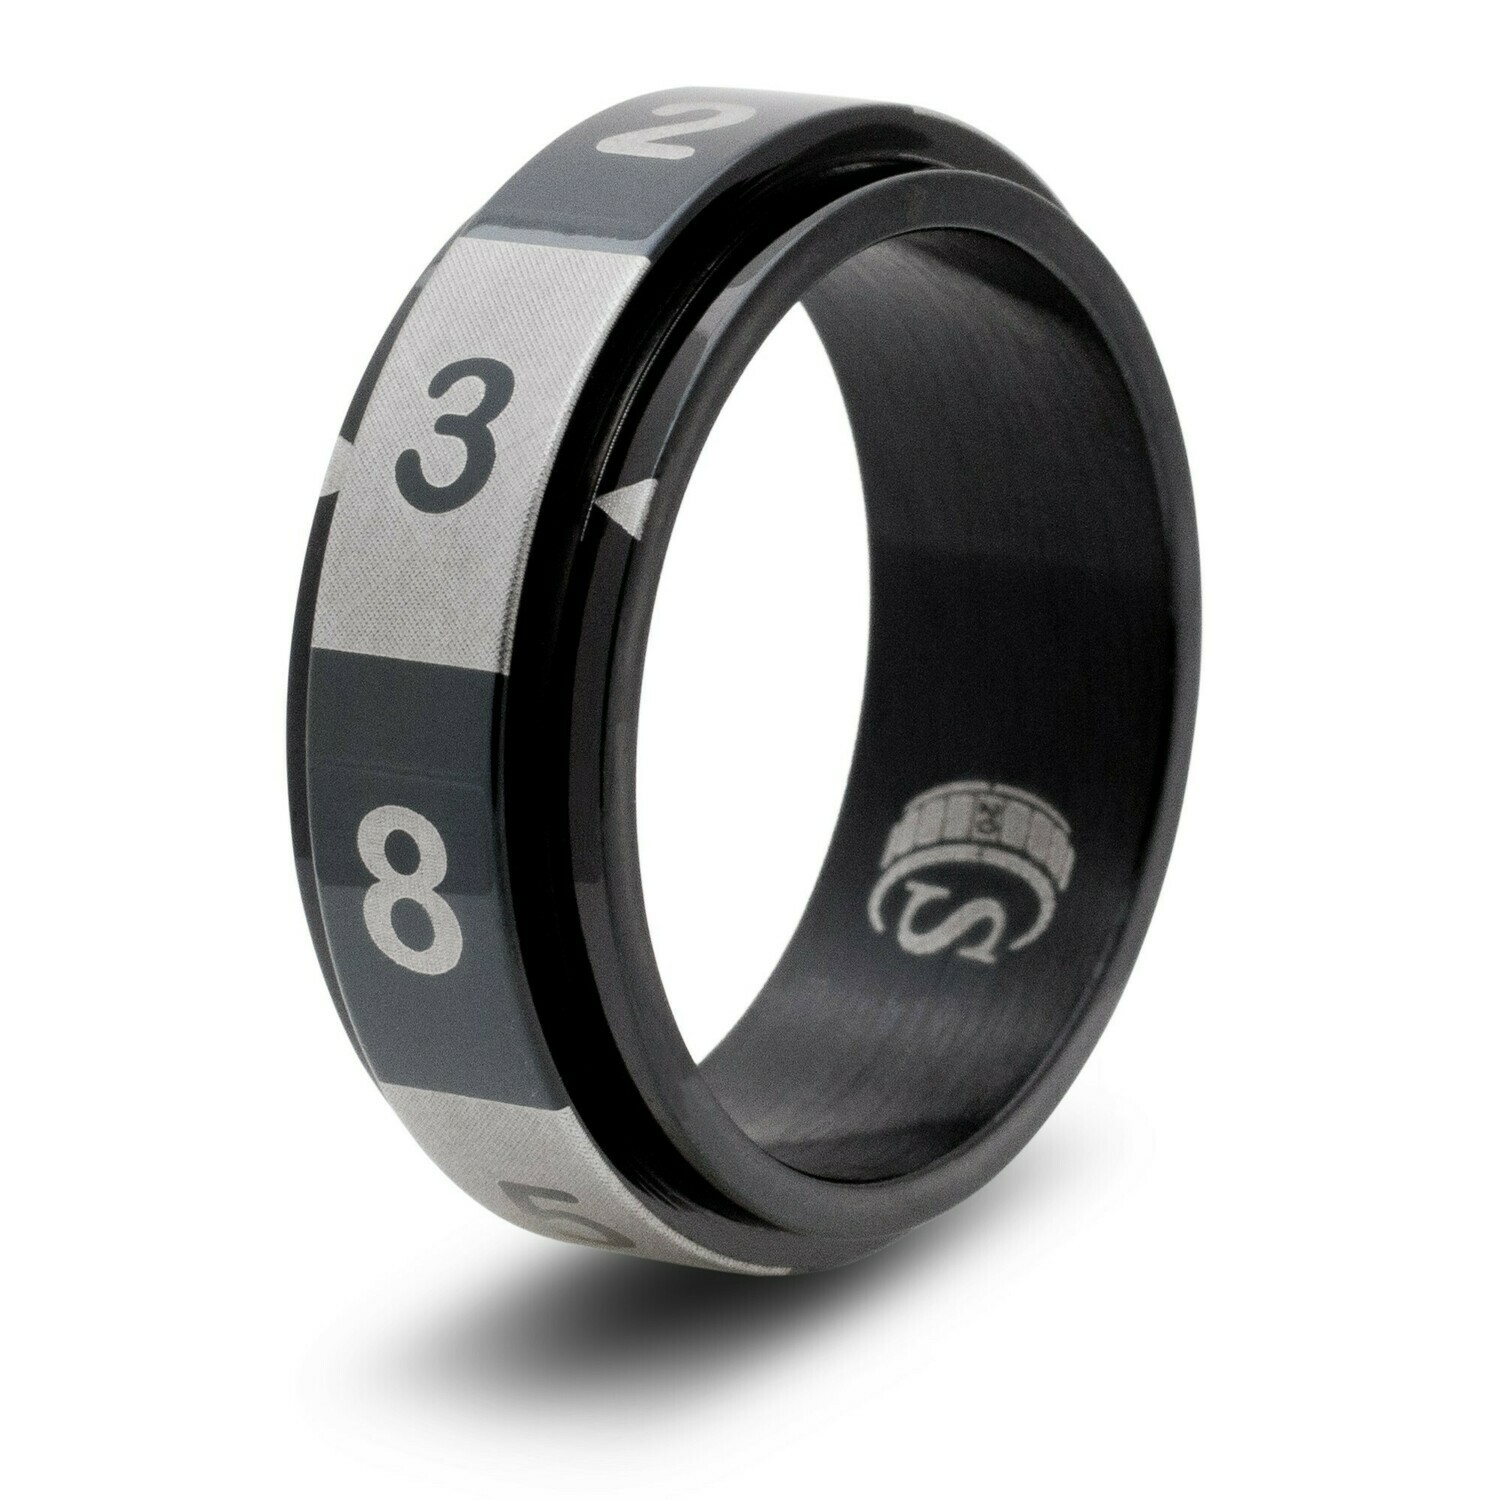 8-sided (D8) Dice Random Number Spinner Ring - Blue, Black, Gold, or Rainbow RPG Tabletop Gaming